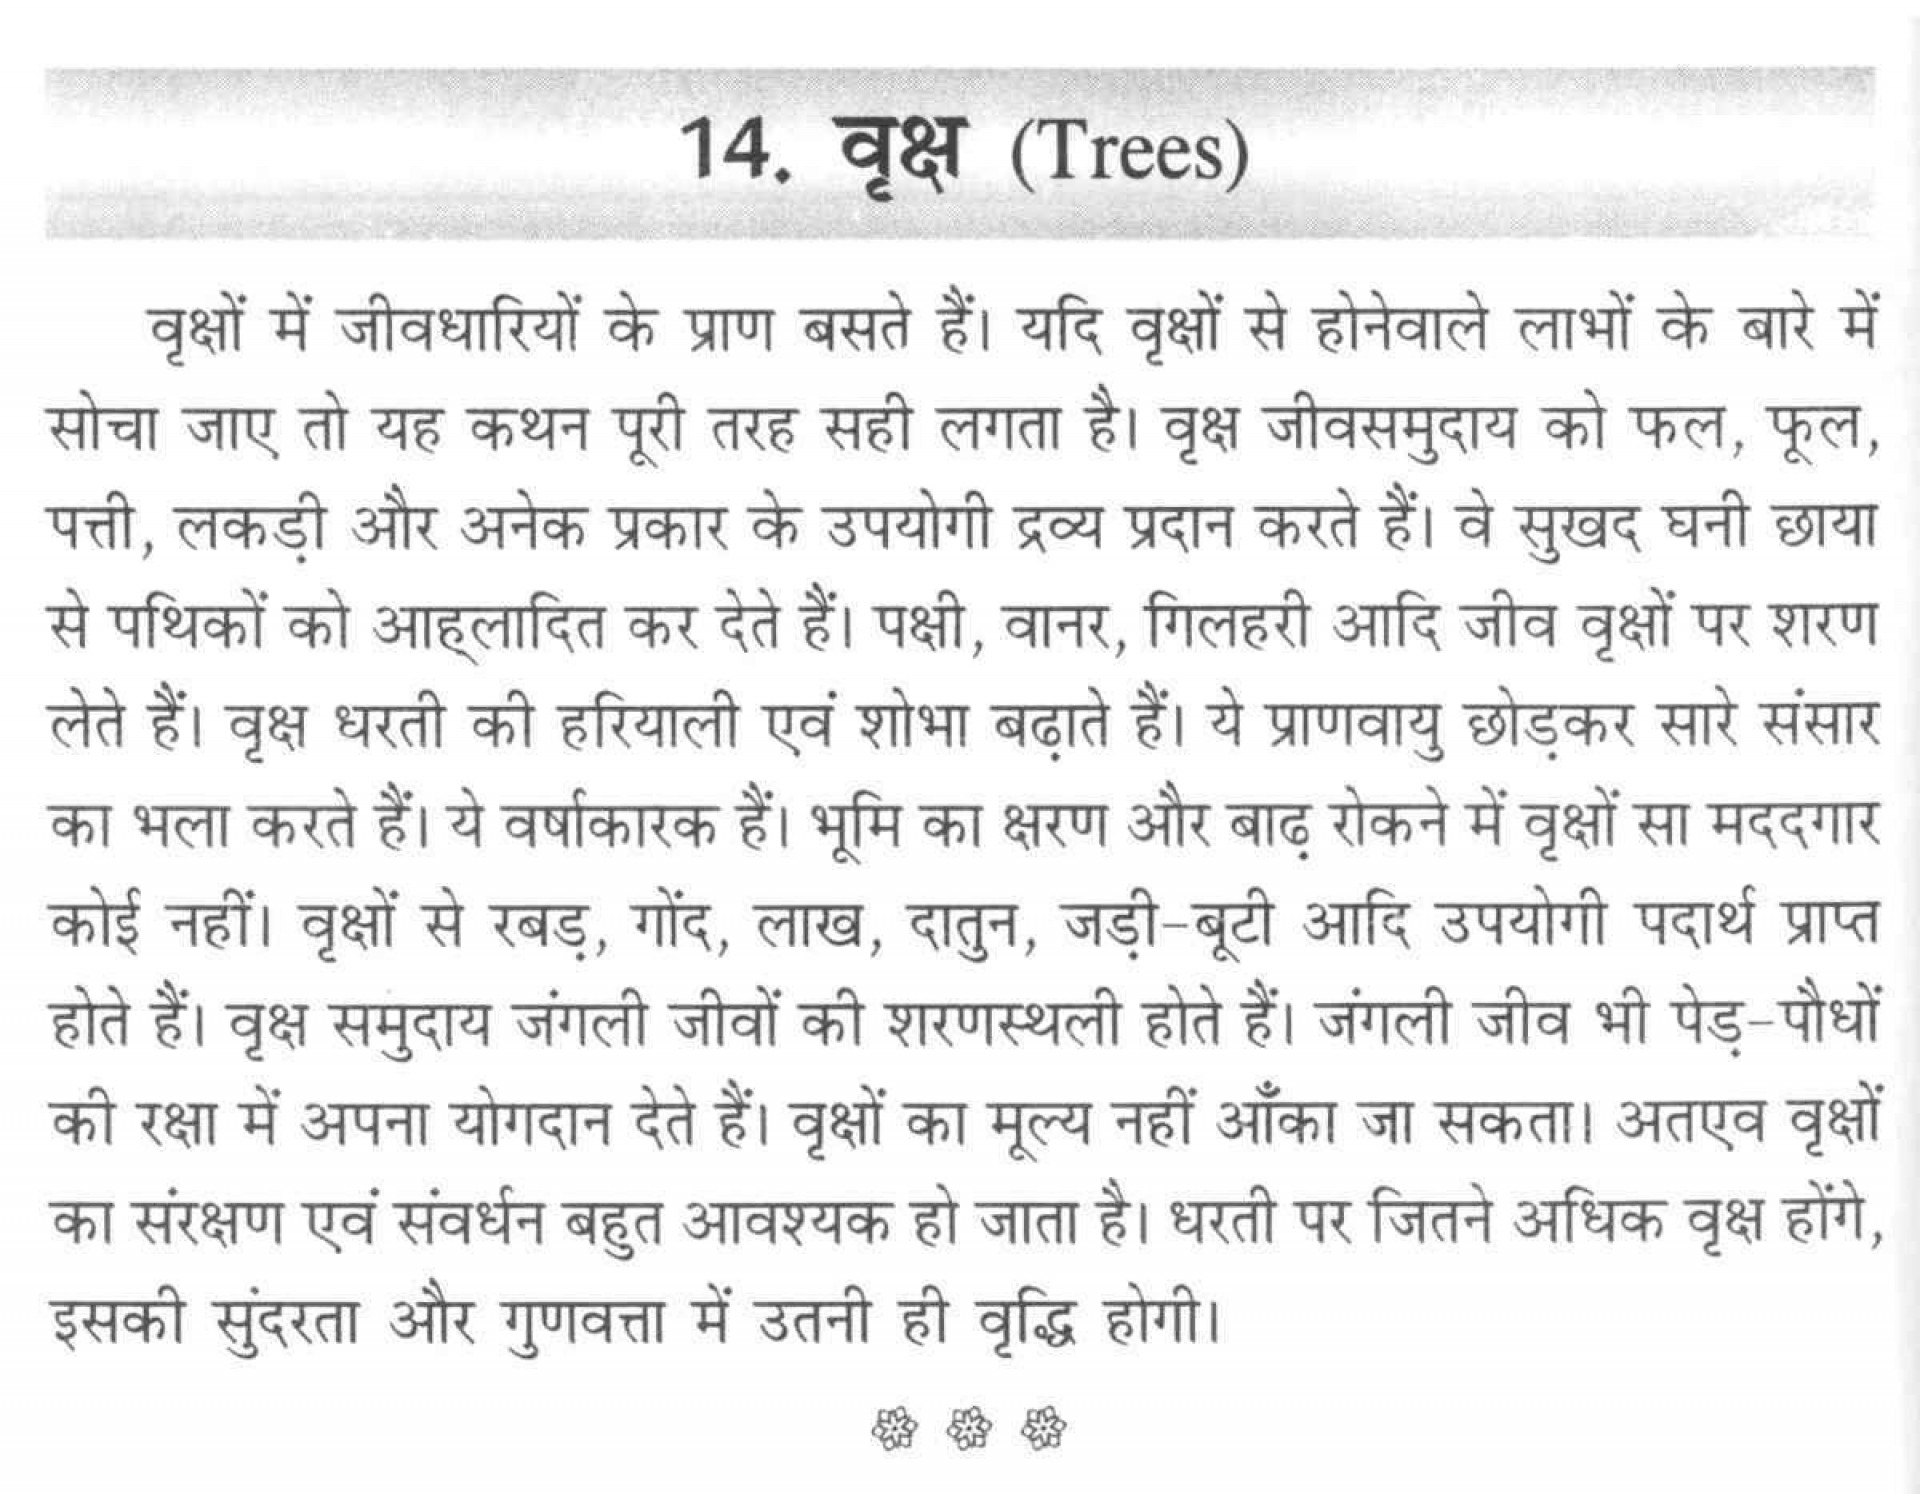 019 Friends Essay 3385844636 Trees Are Our In Odia Marvelous My Marathi Spm Good Books Tamil 1920